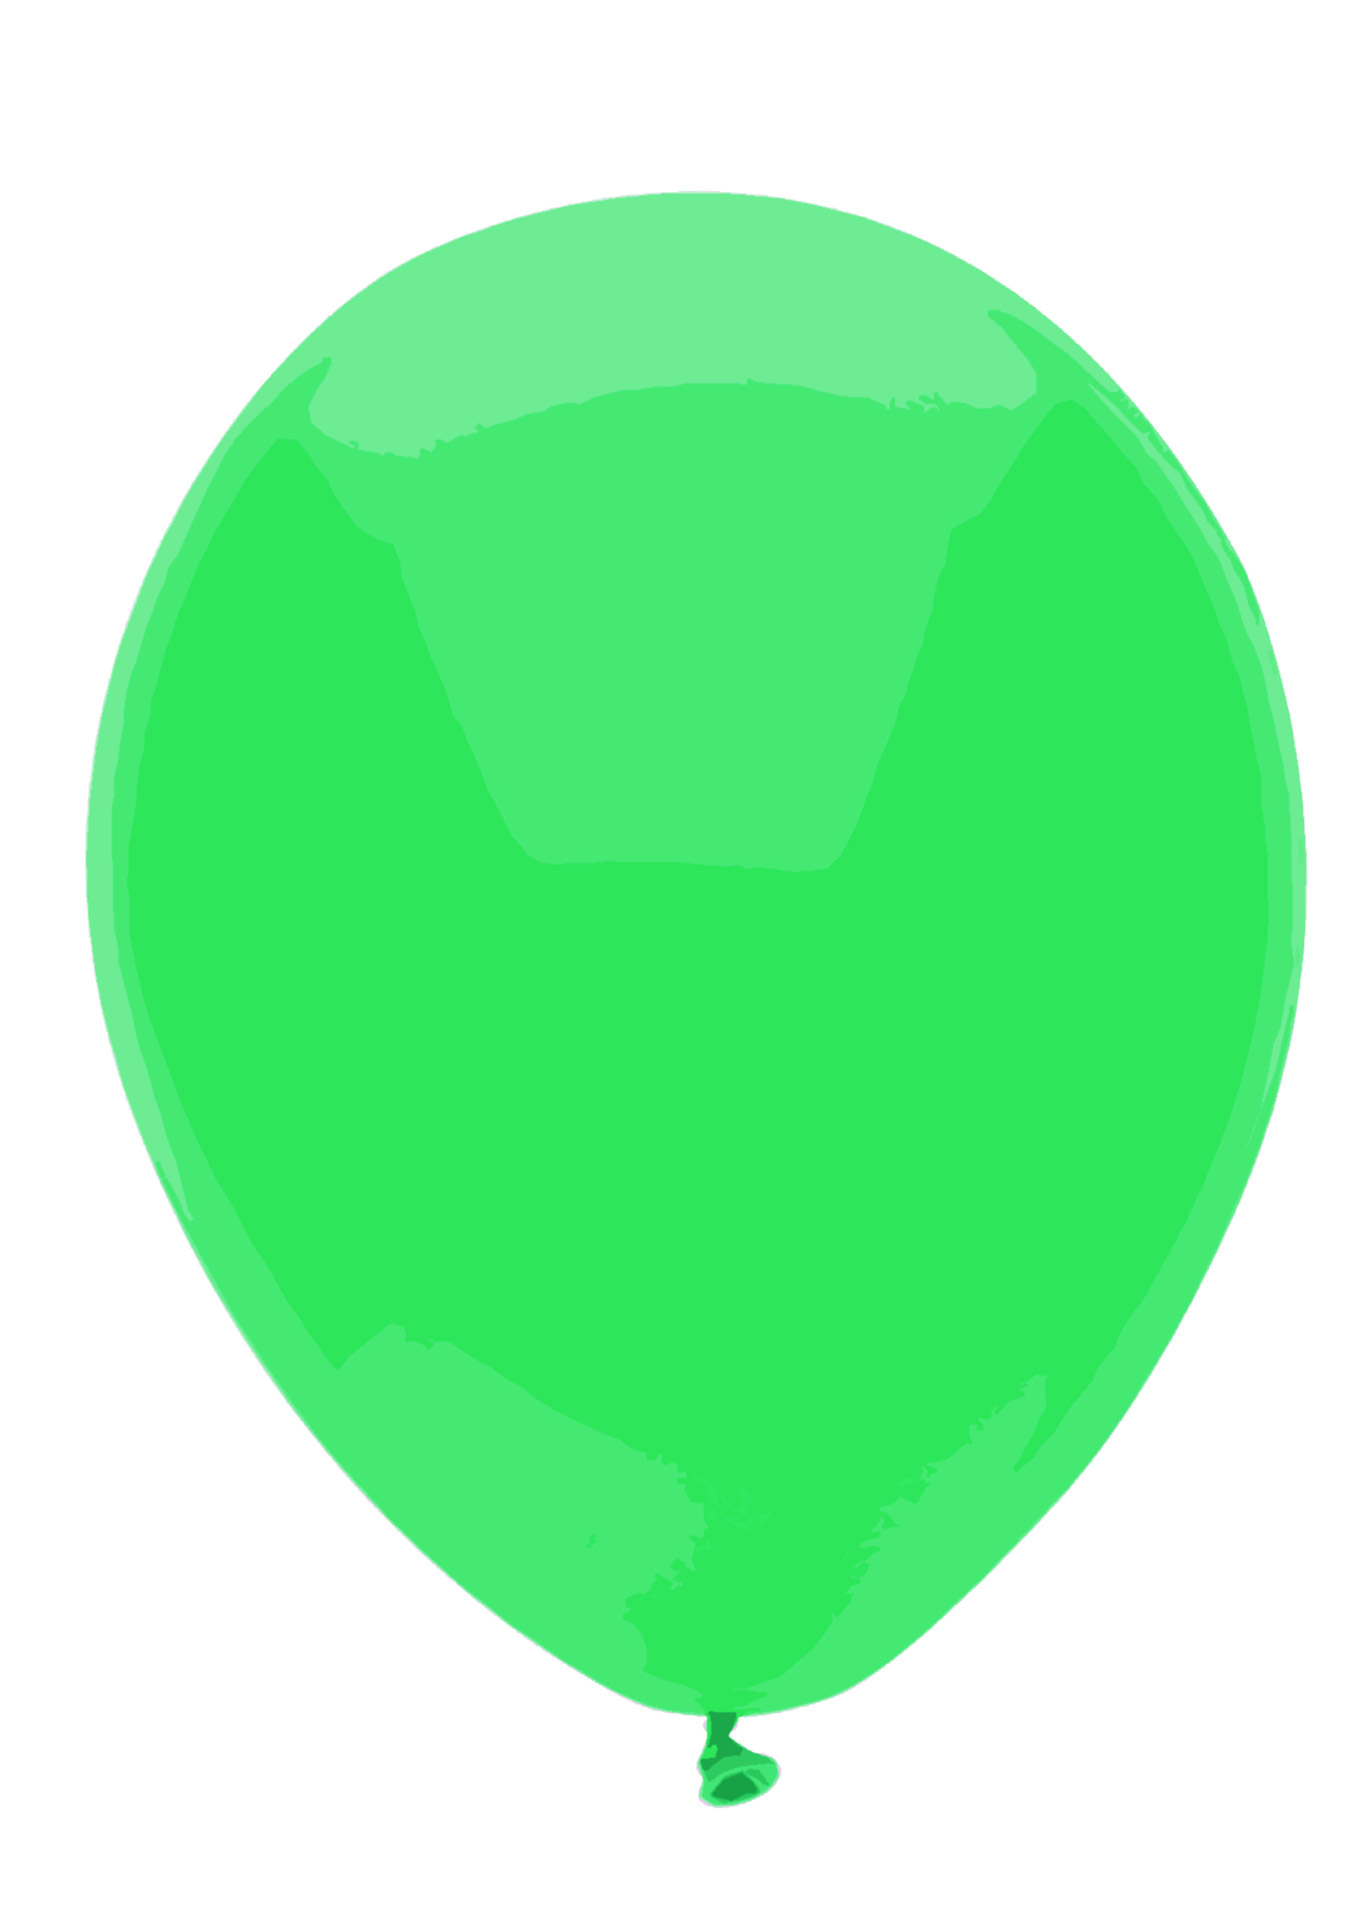 1371x1920 Green Balloon Free Stock Photo